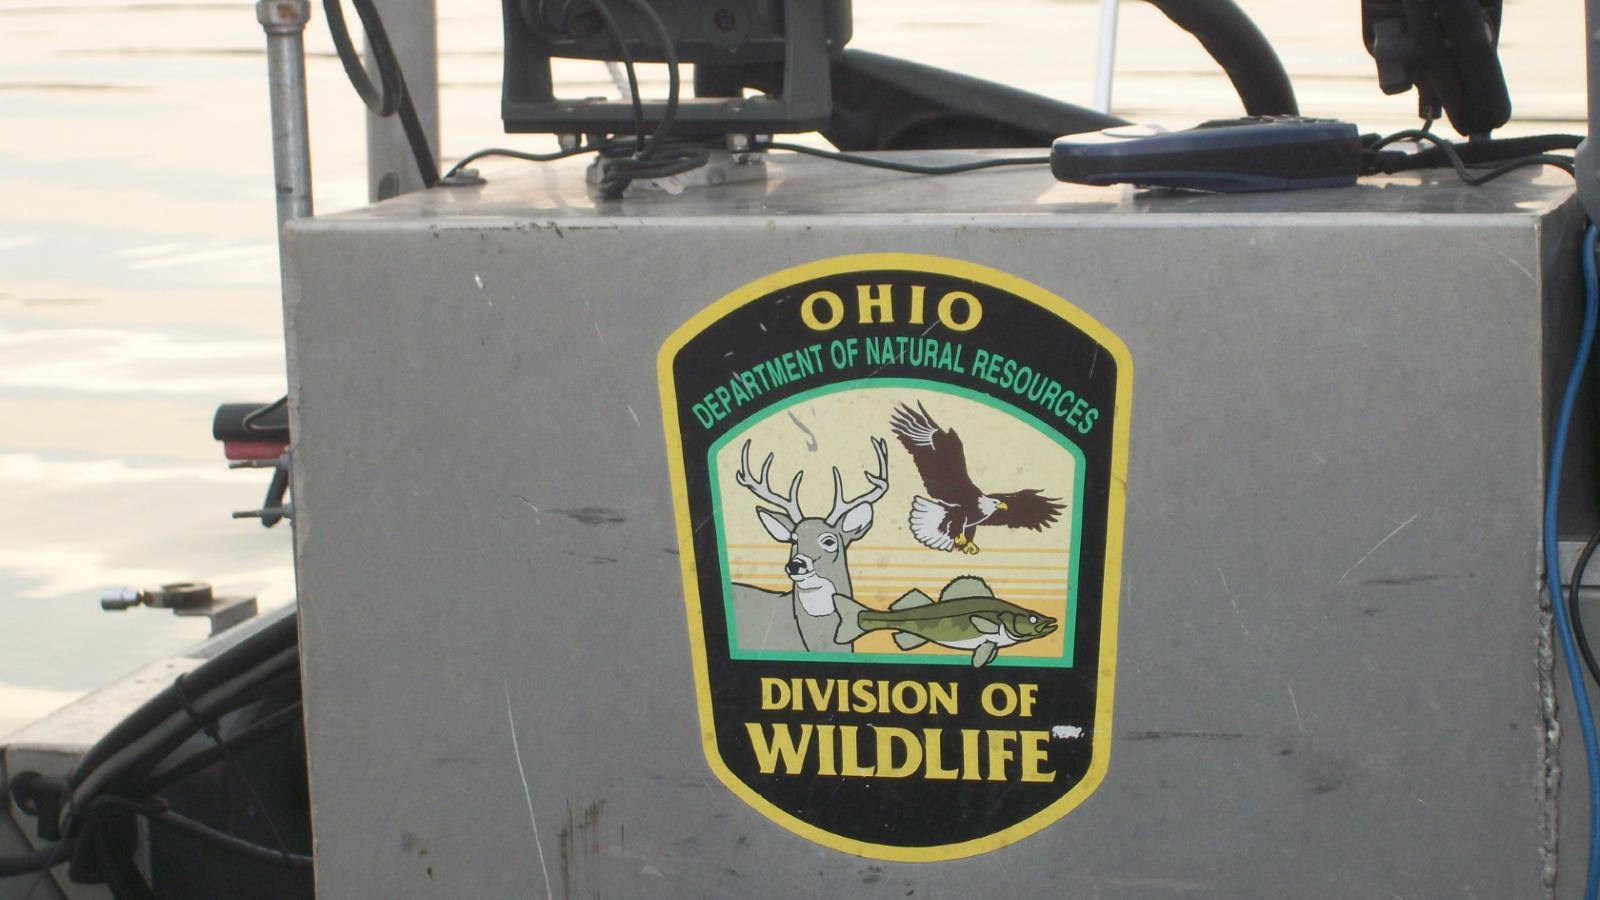 Ohio Division of Wildlife Logo on boat